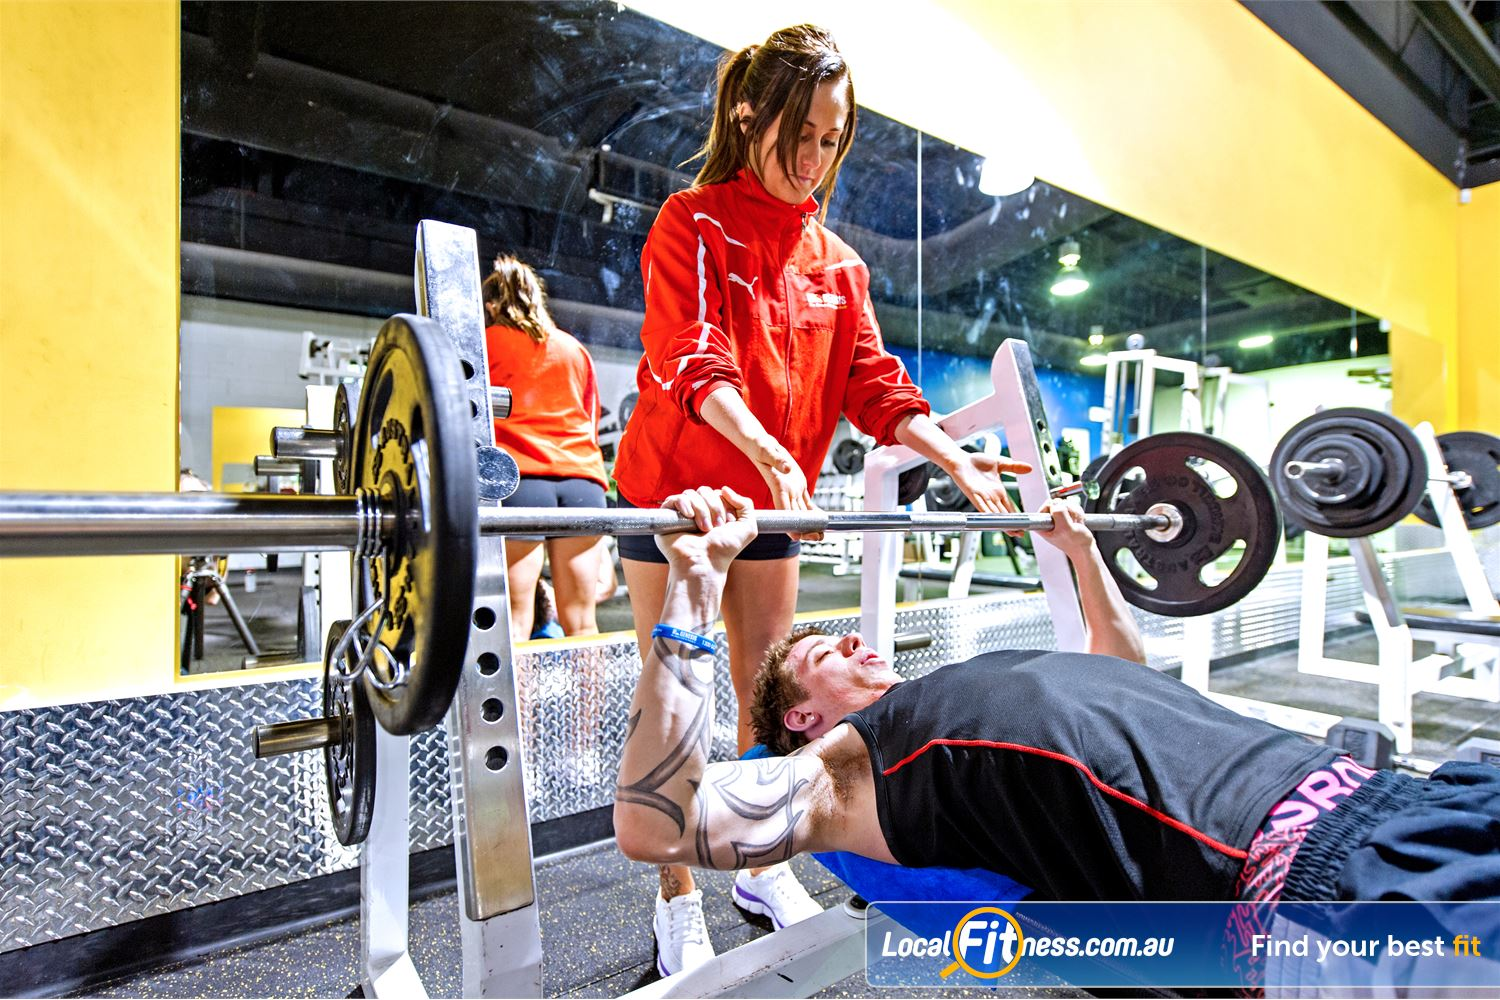 Vibe Health Clubs Blacktown Blacktown gym instructors can help you build muscle through free-weights.